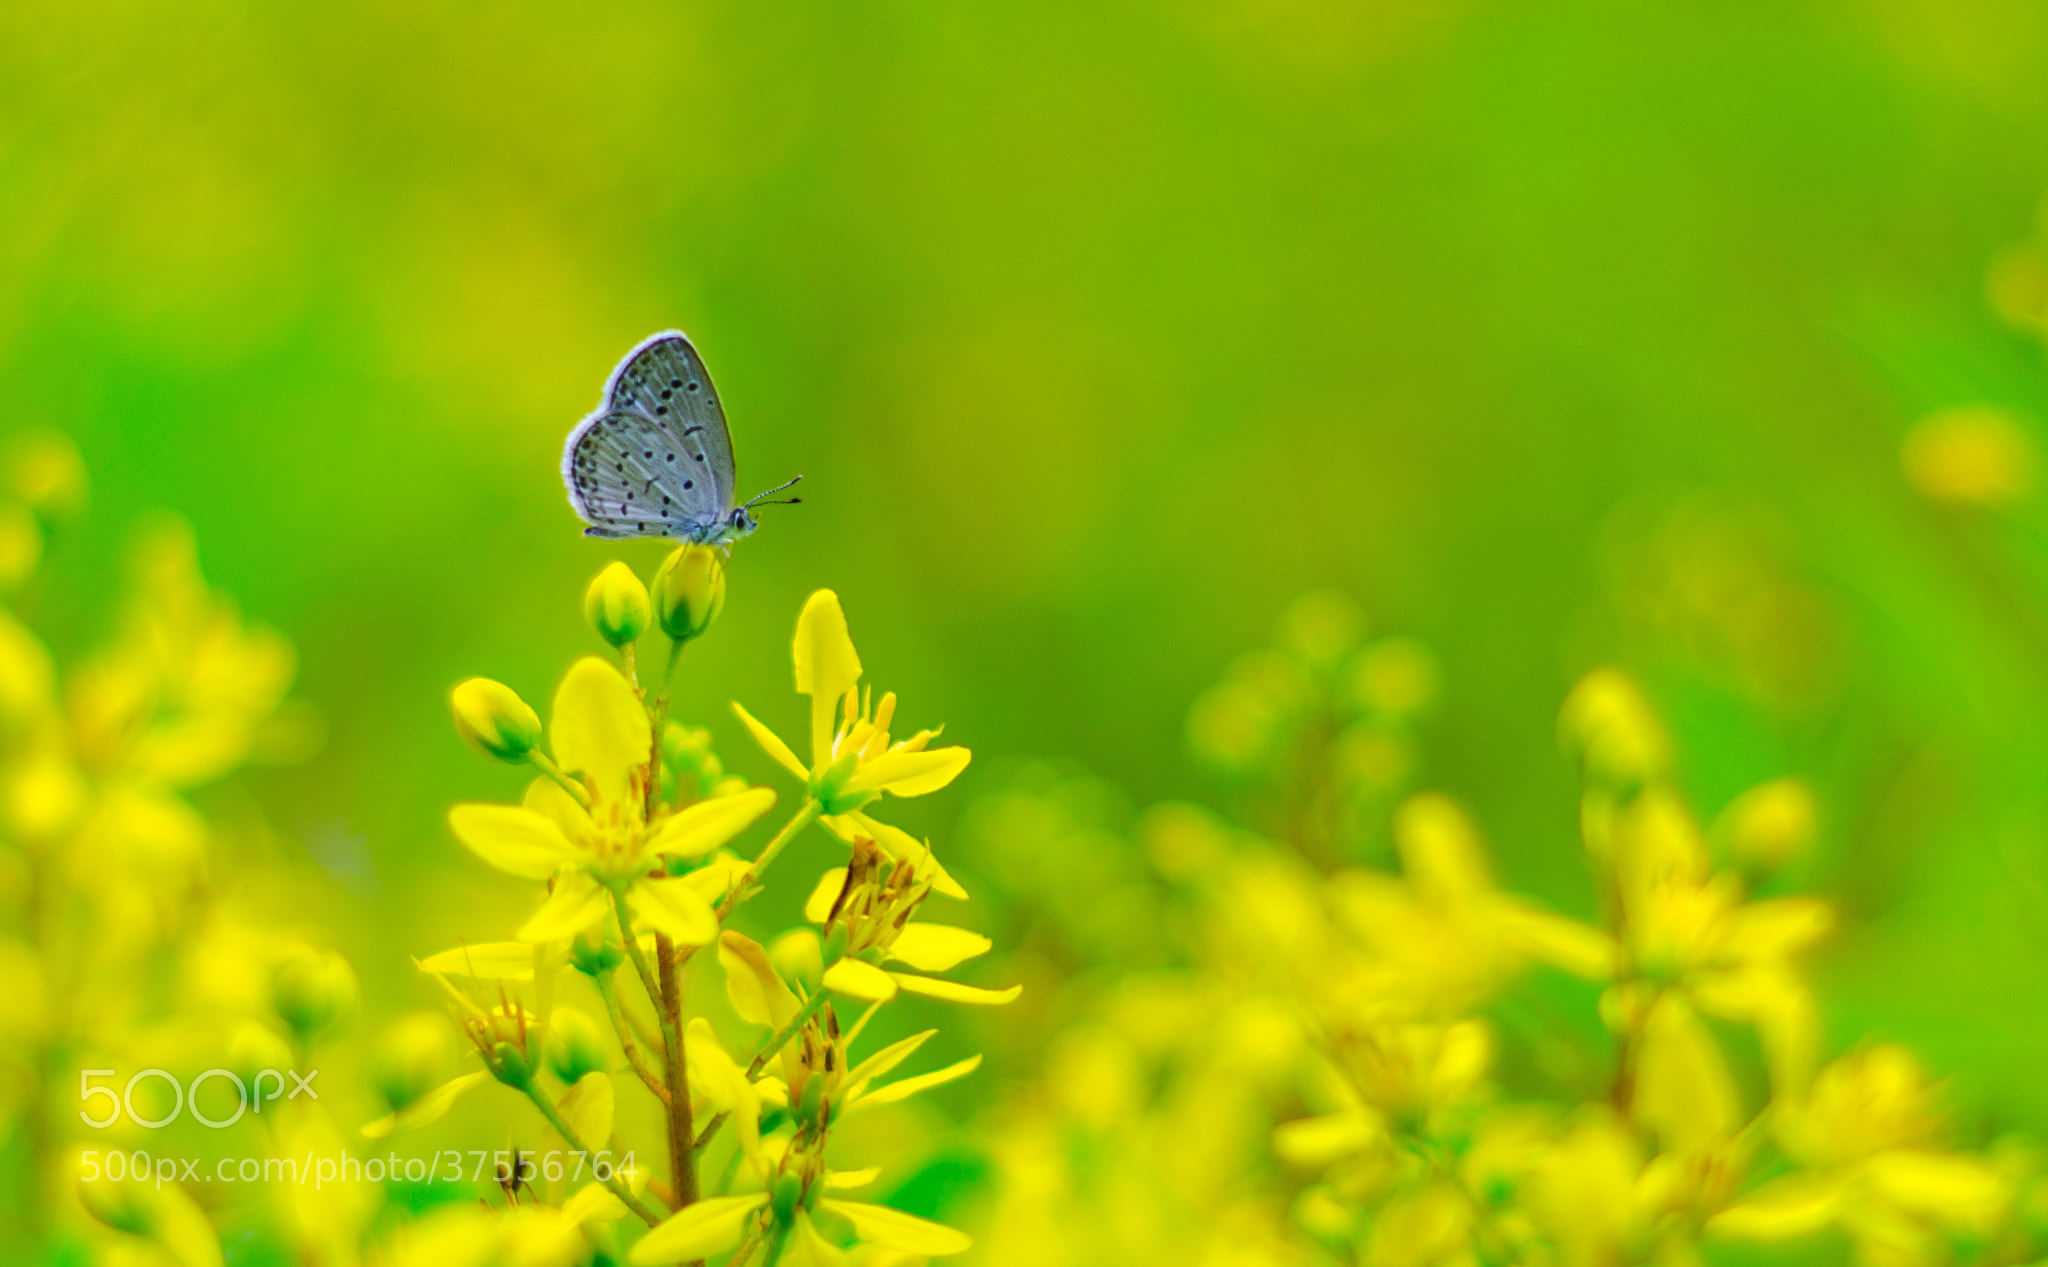 Photograph we love green and flowers by Zachary Voo on 500px